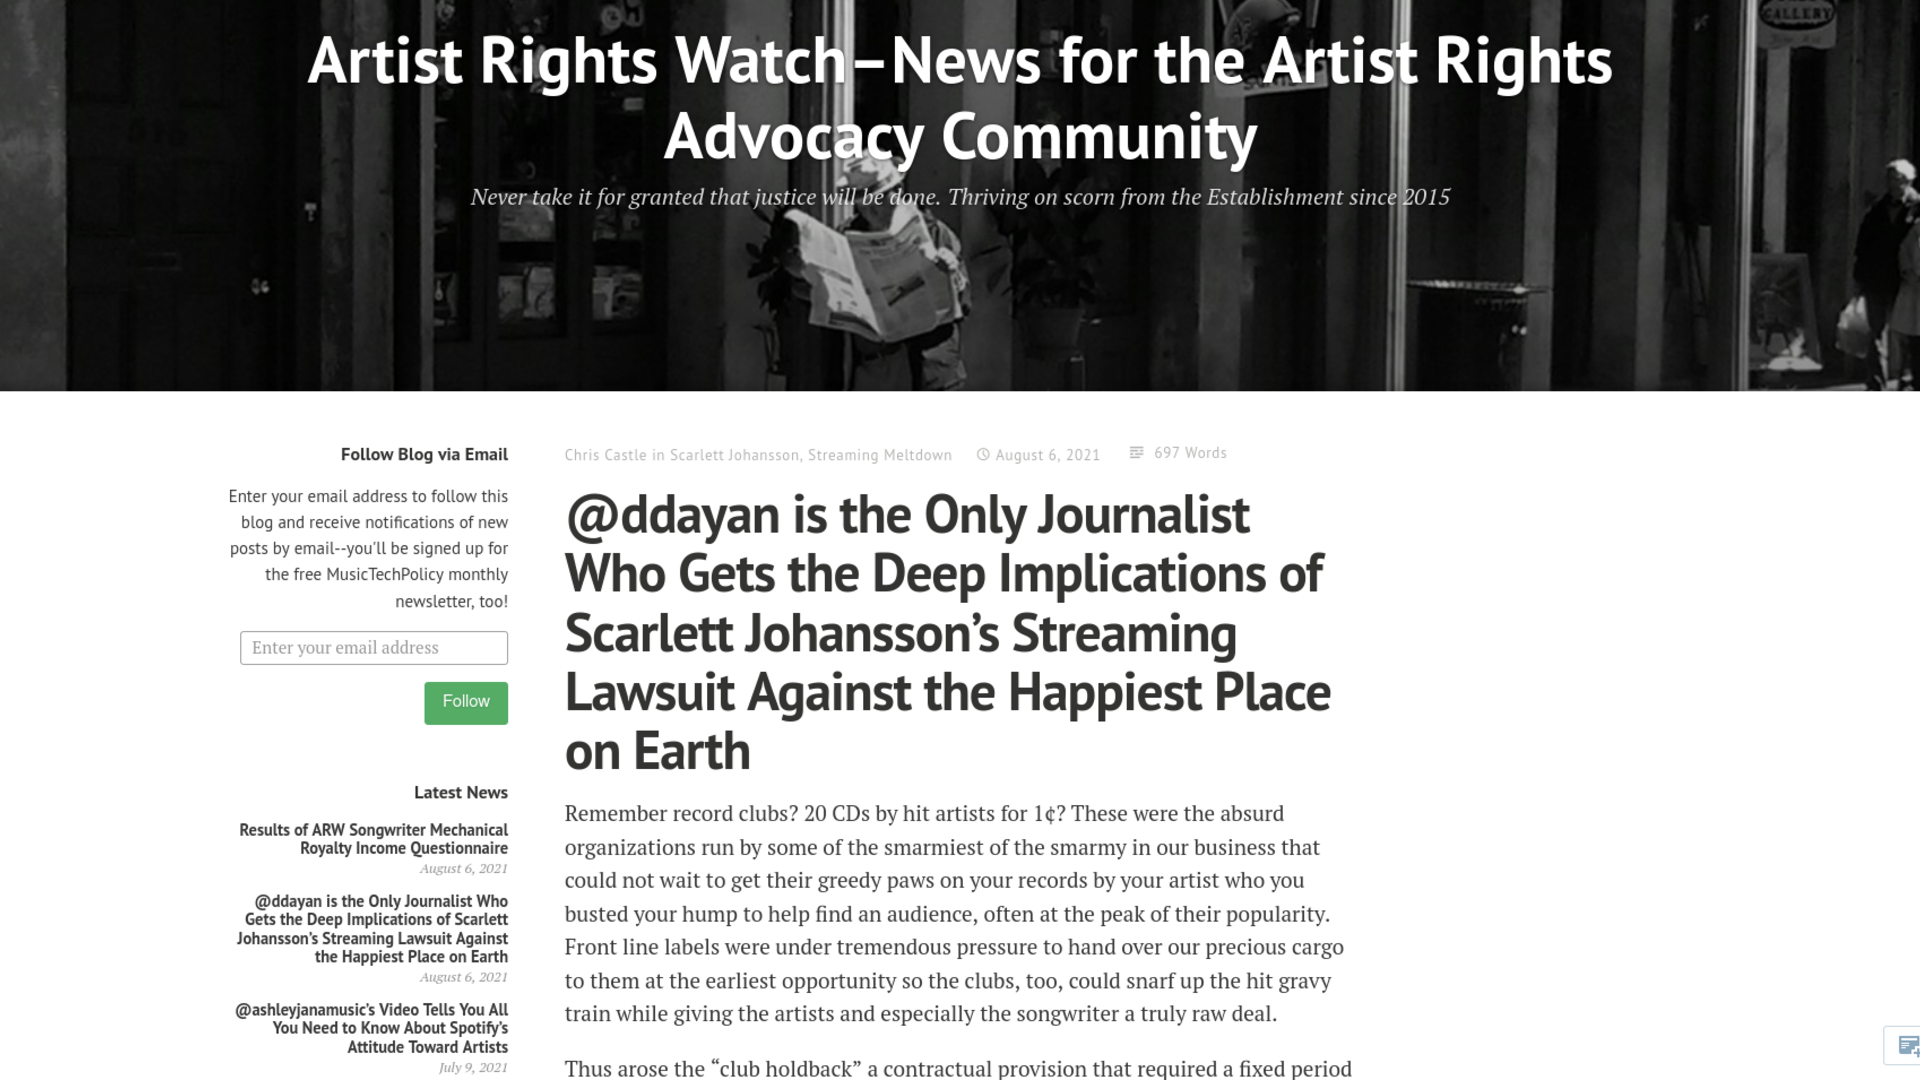 Fairness Rocks News @ddayan is the Only Journalist Who Gets the Deep Implications of Scarlett Johansson's Streaming Lawsuit Against the Happiest Place on Earth